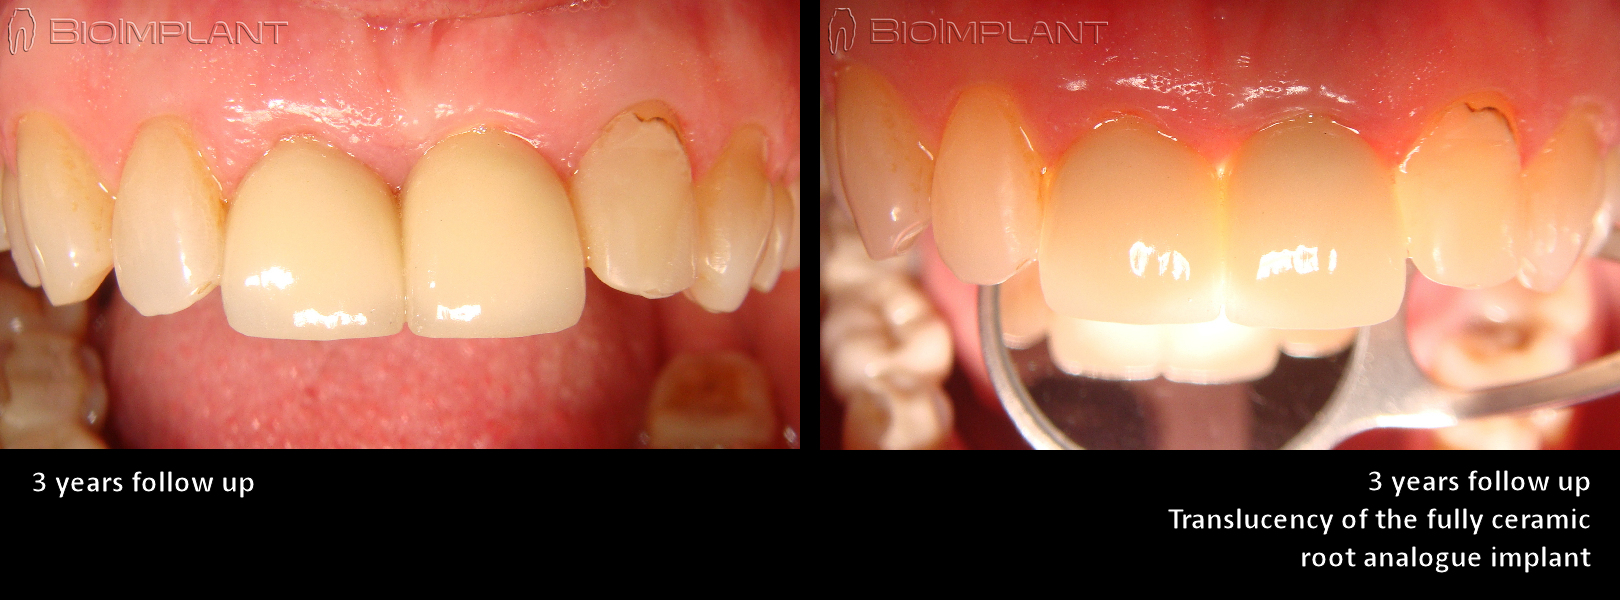 translucency of root analogue implant fully ceramic